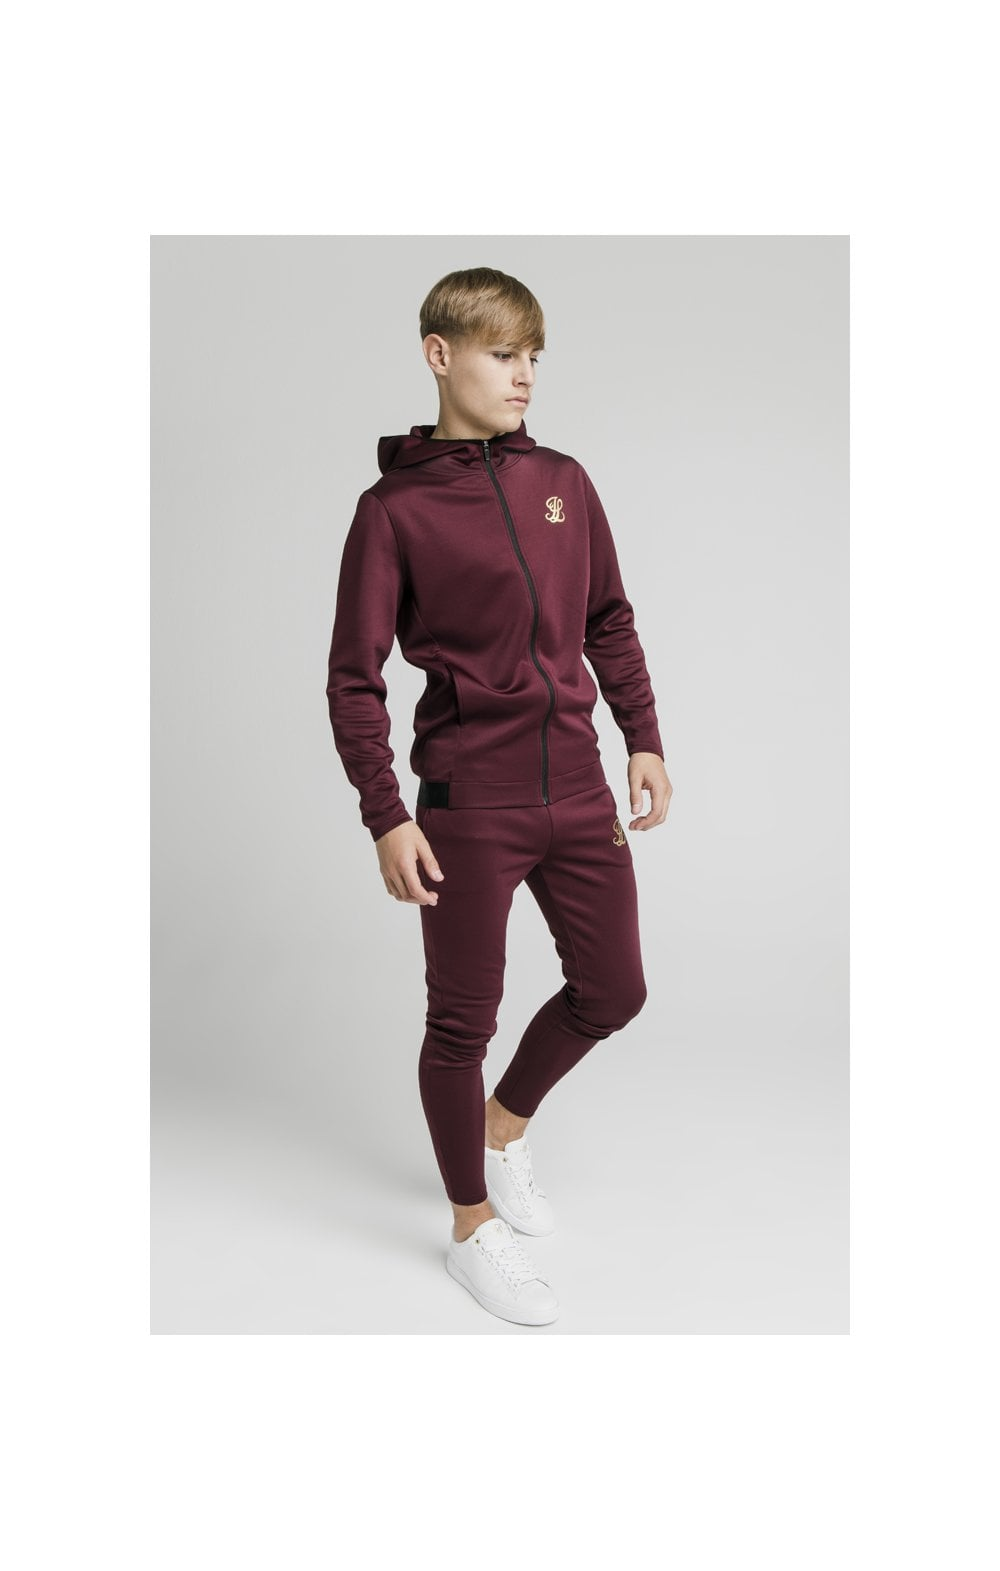 Load image into Gallery viewer, Illusive London Agility Zip Through Hoodie - Burgundy (5)